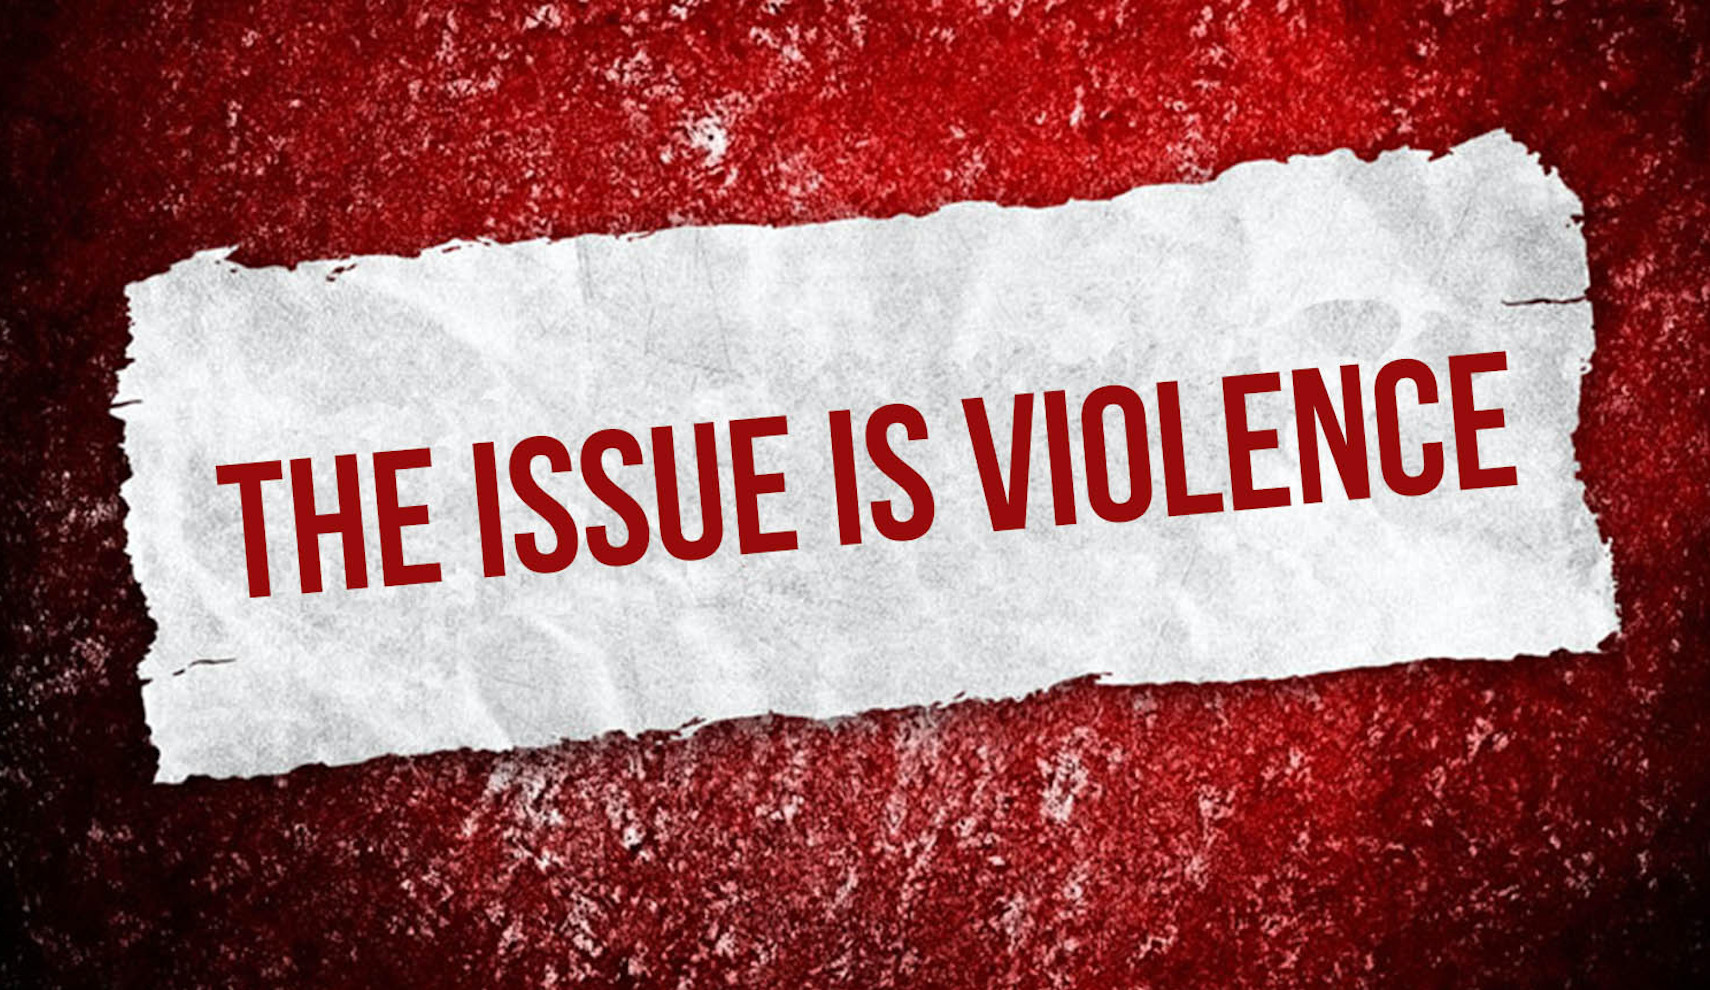 violence-issue-galck